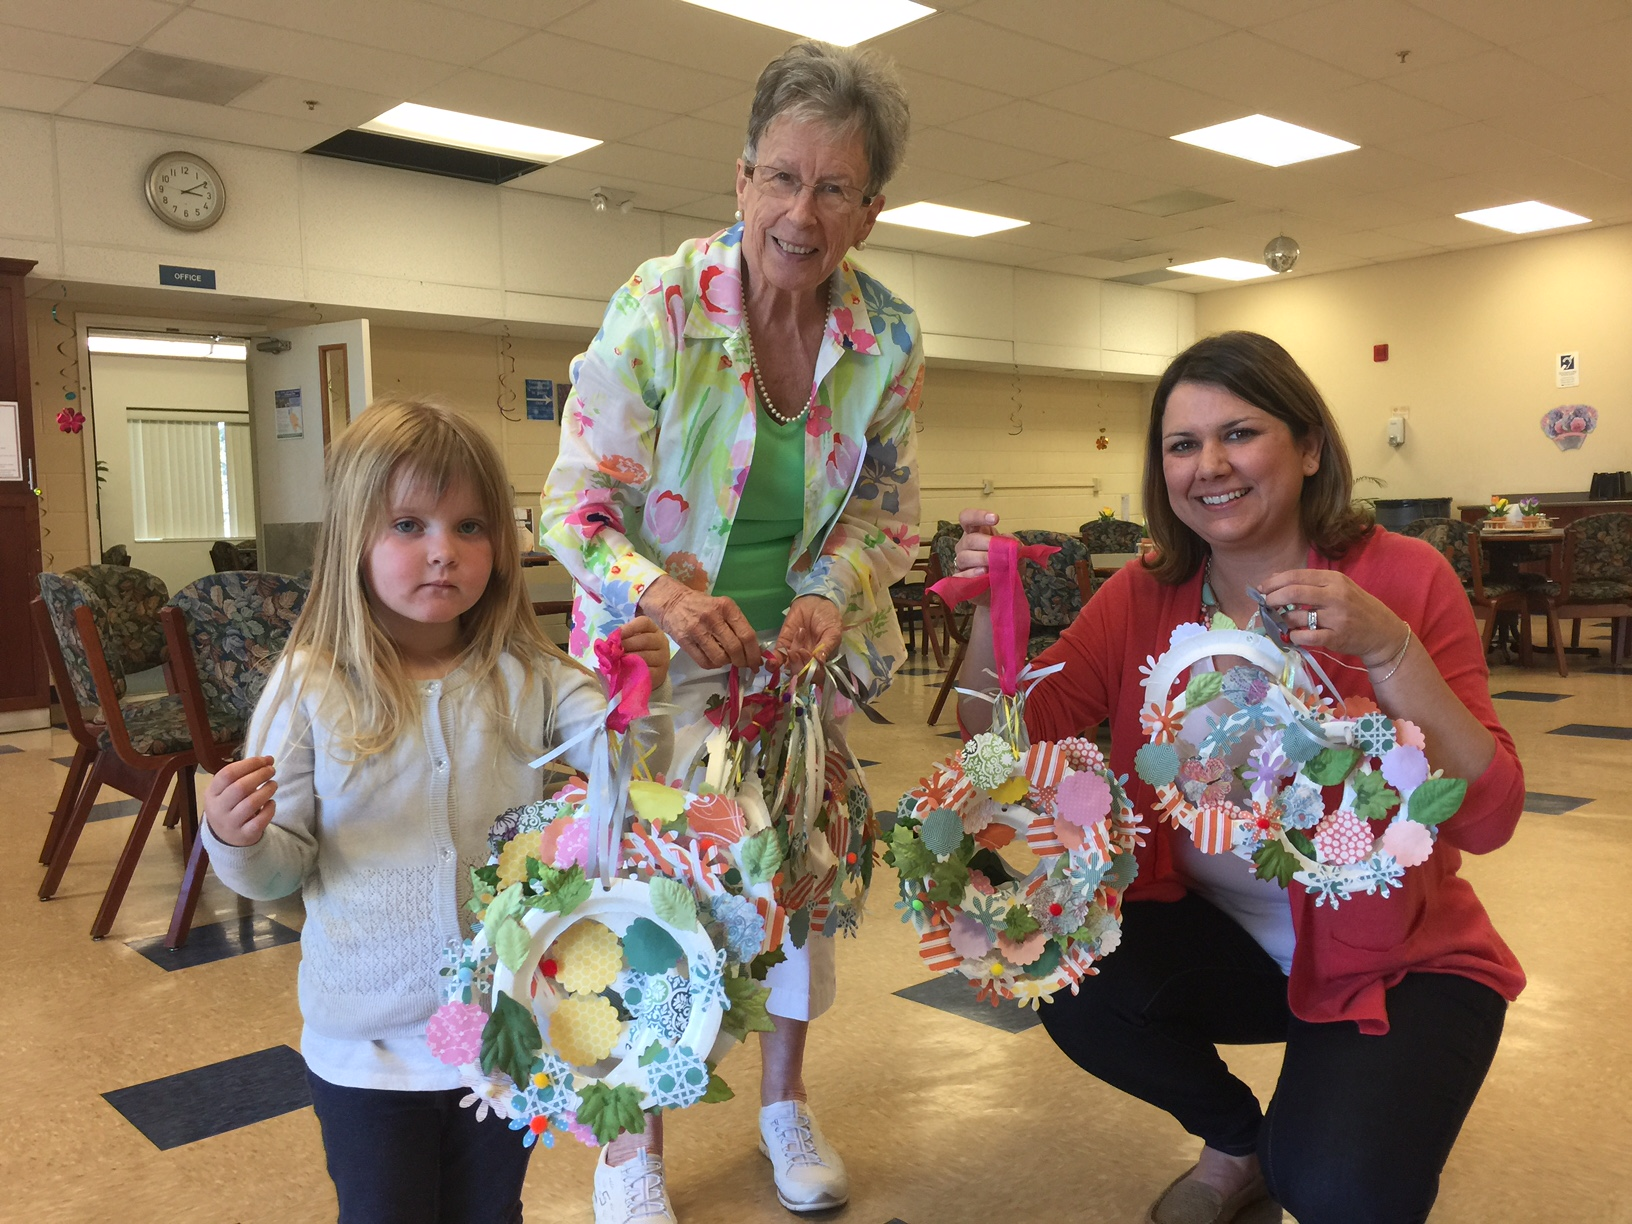 Addie giving the Madrone flower wreaths to Yvonne Griffin (left) and Rebecca Todd (right). They were extremely appreciative and excited to distribute them to the senior members of their center.